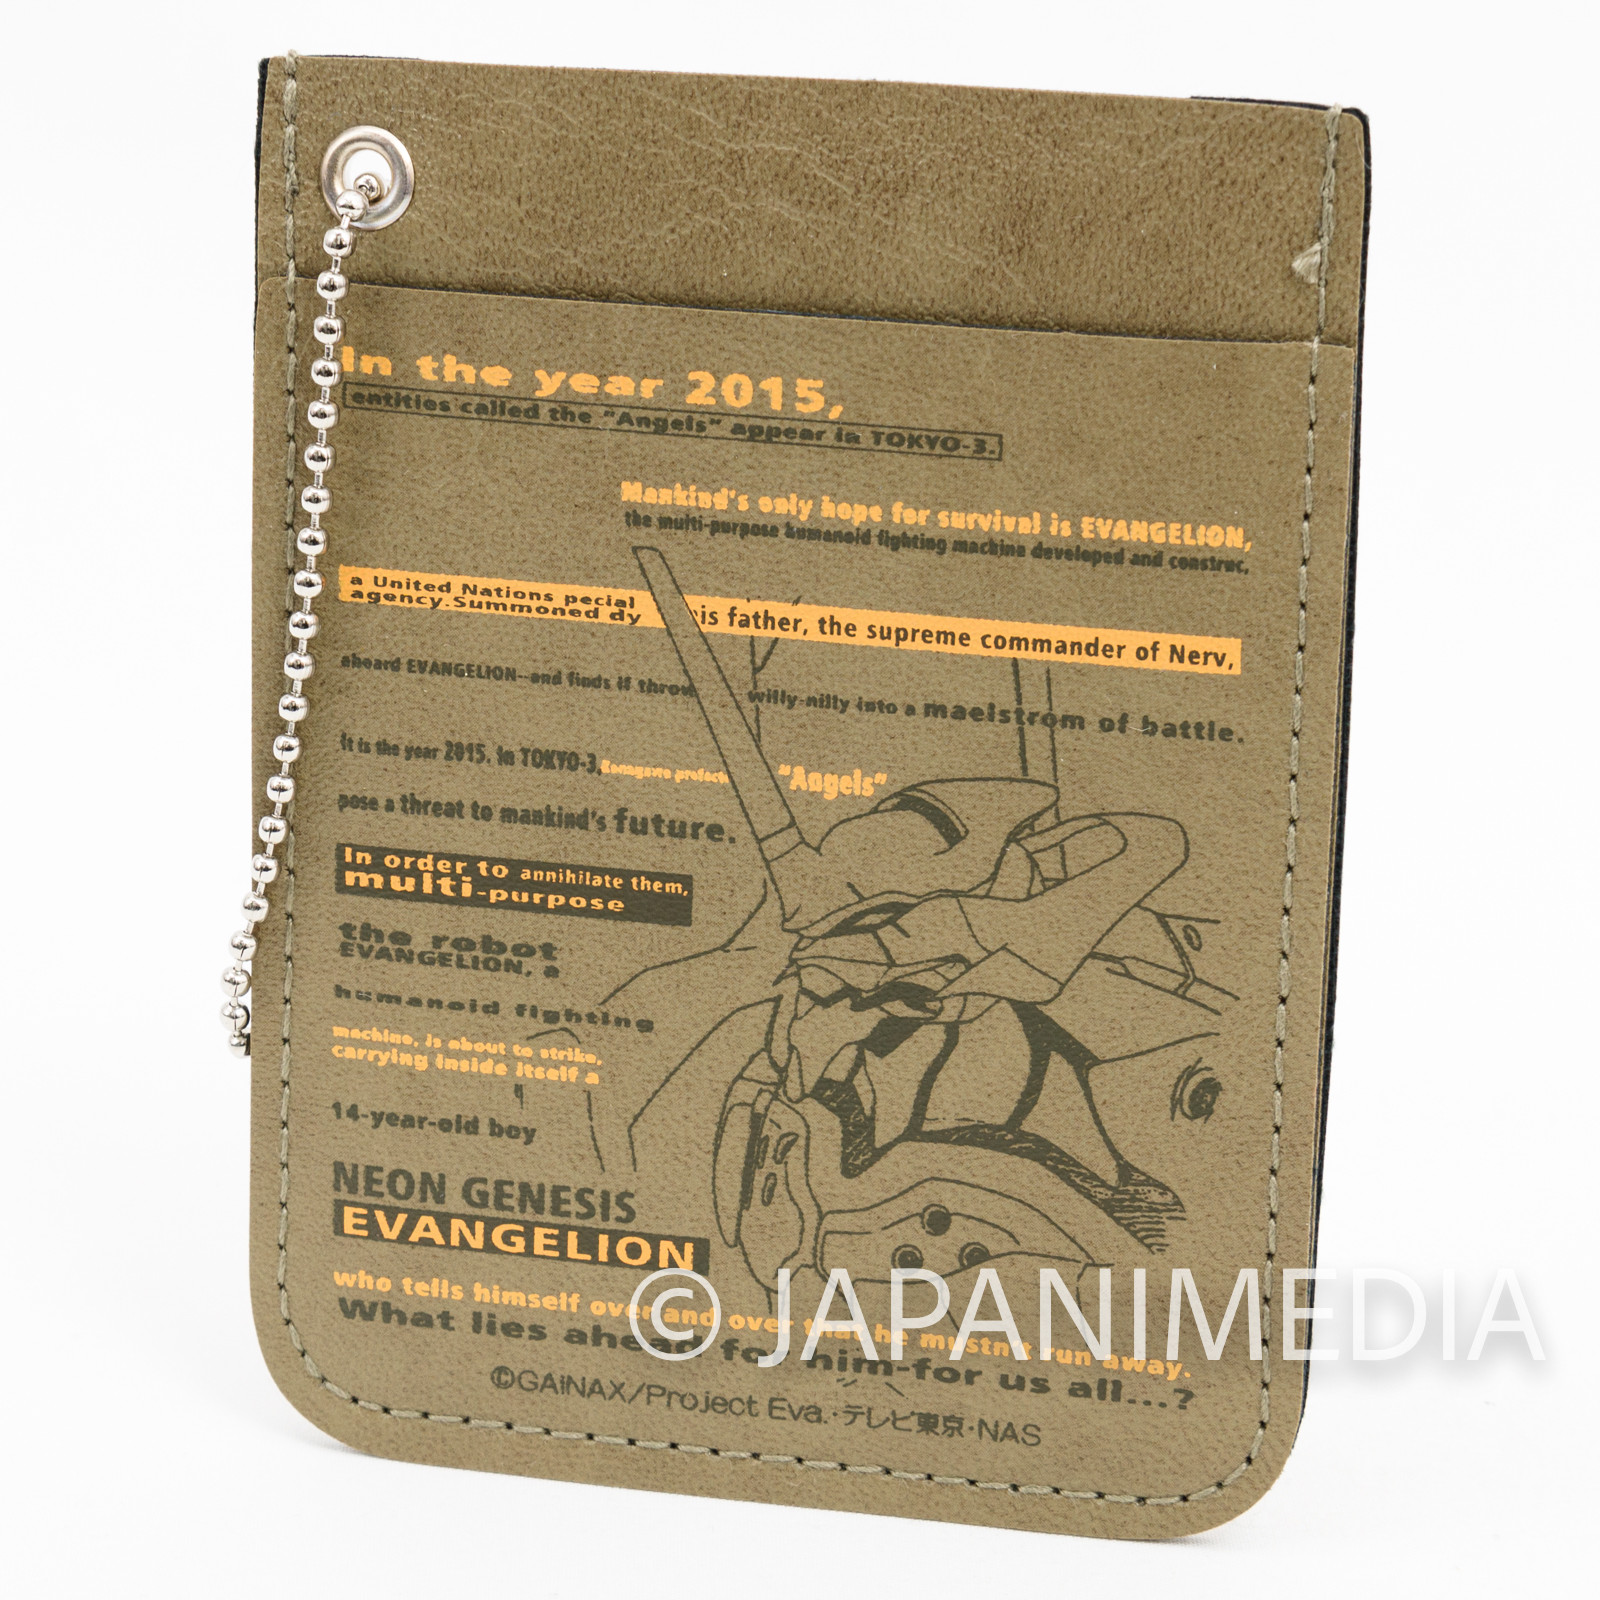 Evangelion EVA-01 Pass Card Case Ballchain JAPAN ANIME